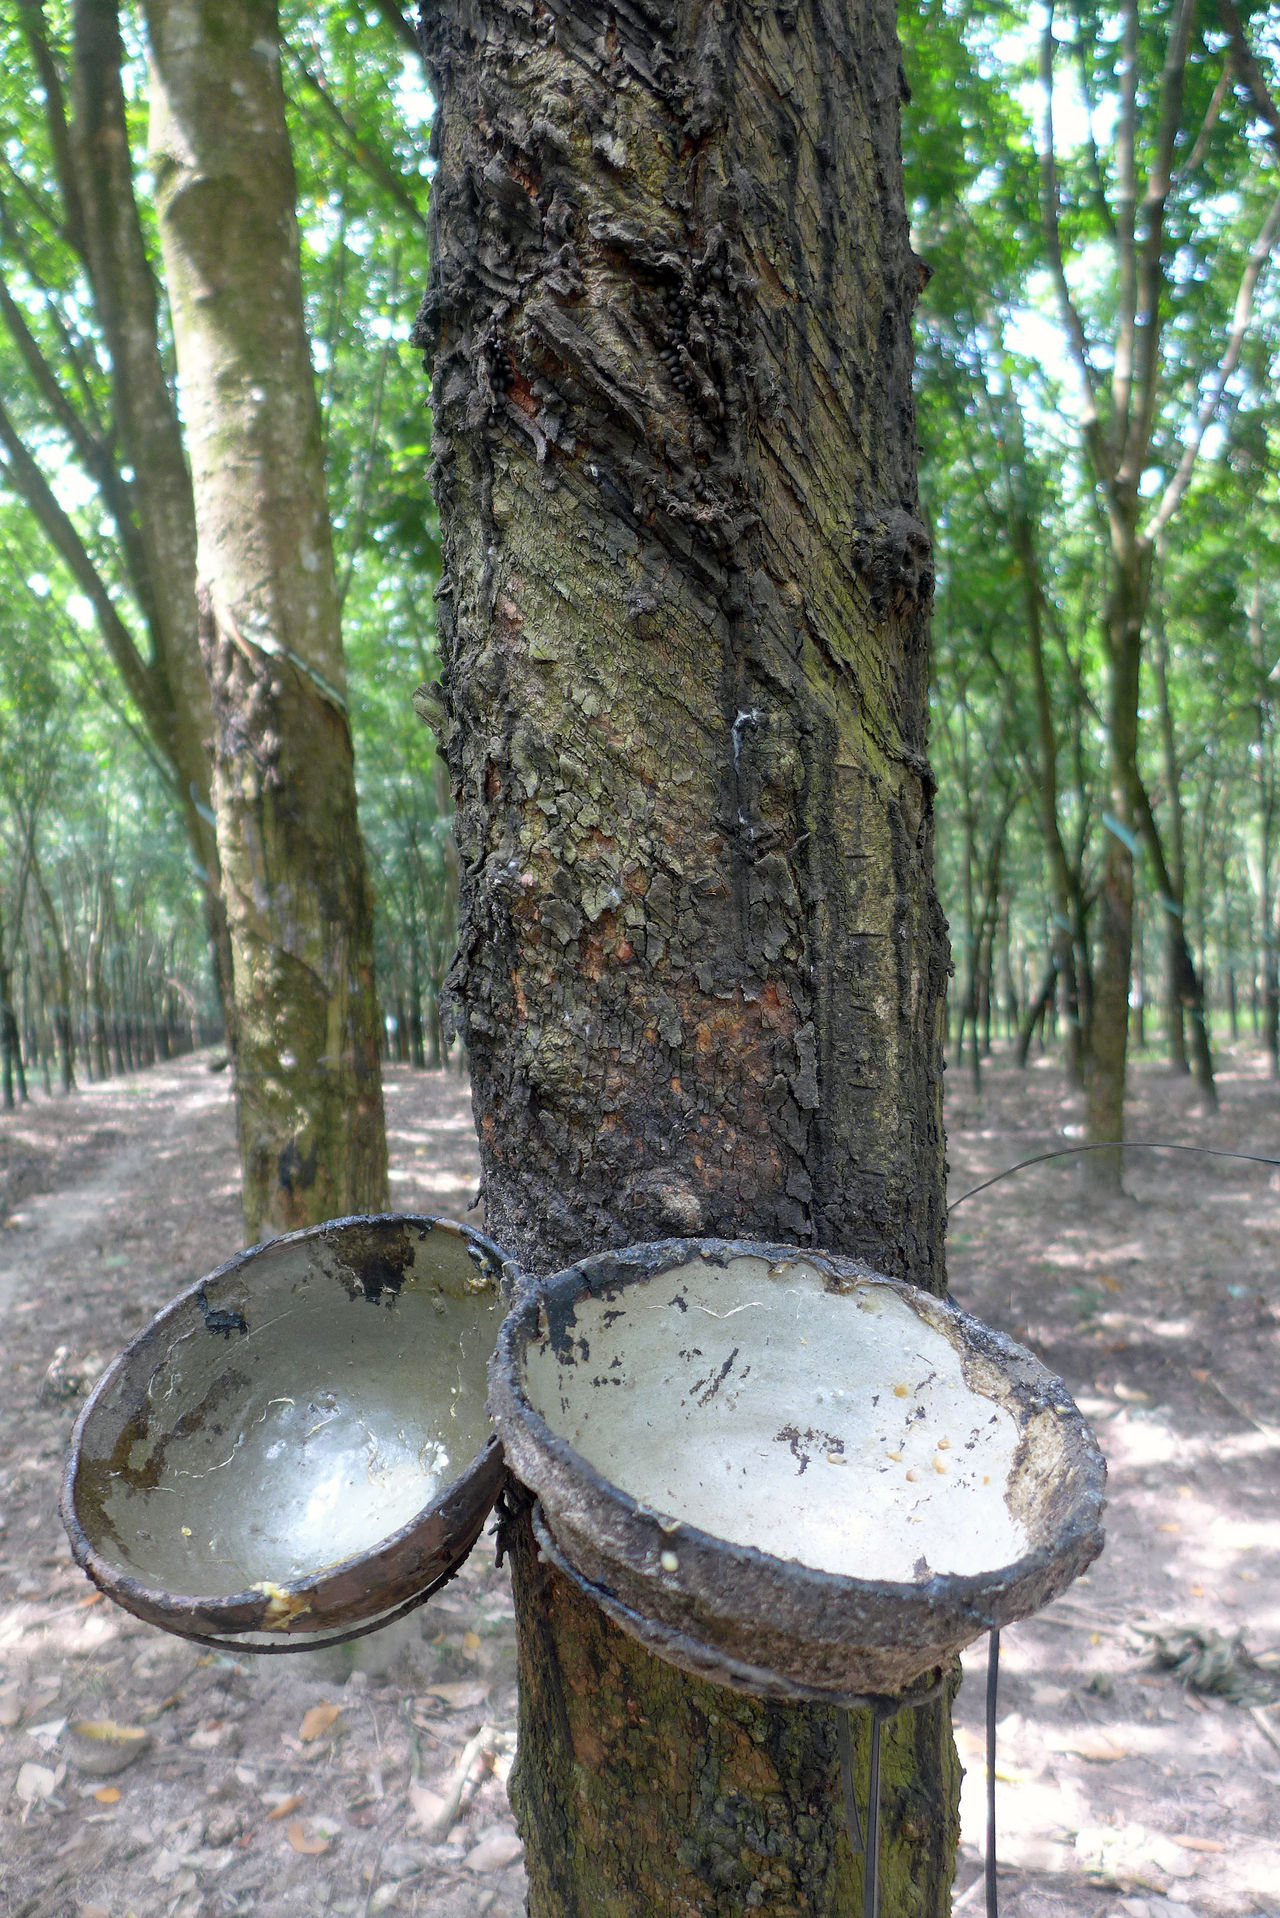 Travel through Vietnam Close-up Focus On Foreground Forest Growth Kautschukplantage No People Rubber Harvest Rubber Plantation Tranquility Travel Photography Tree Tree Trunk Vietnam